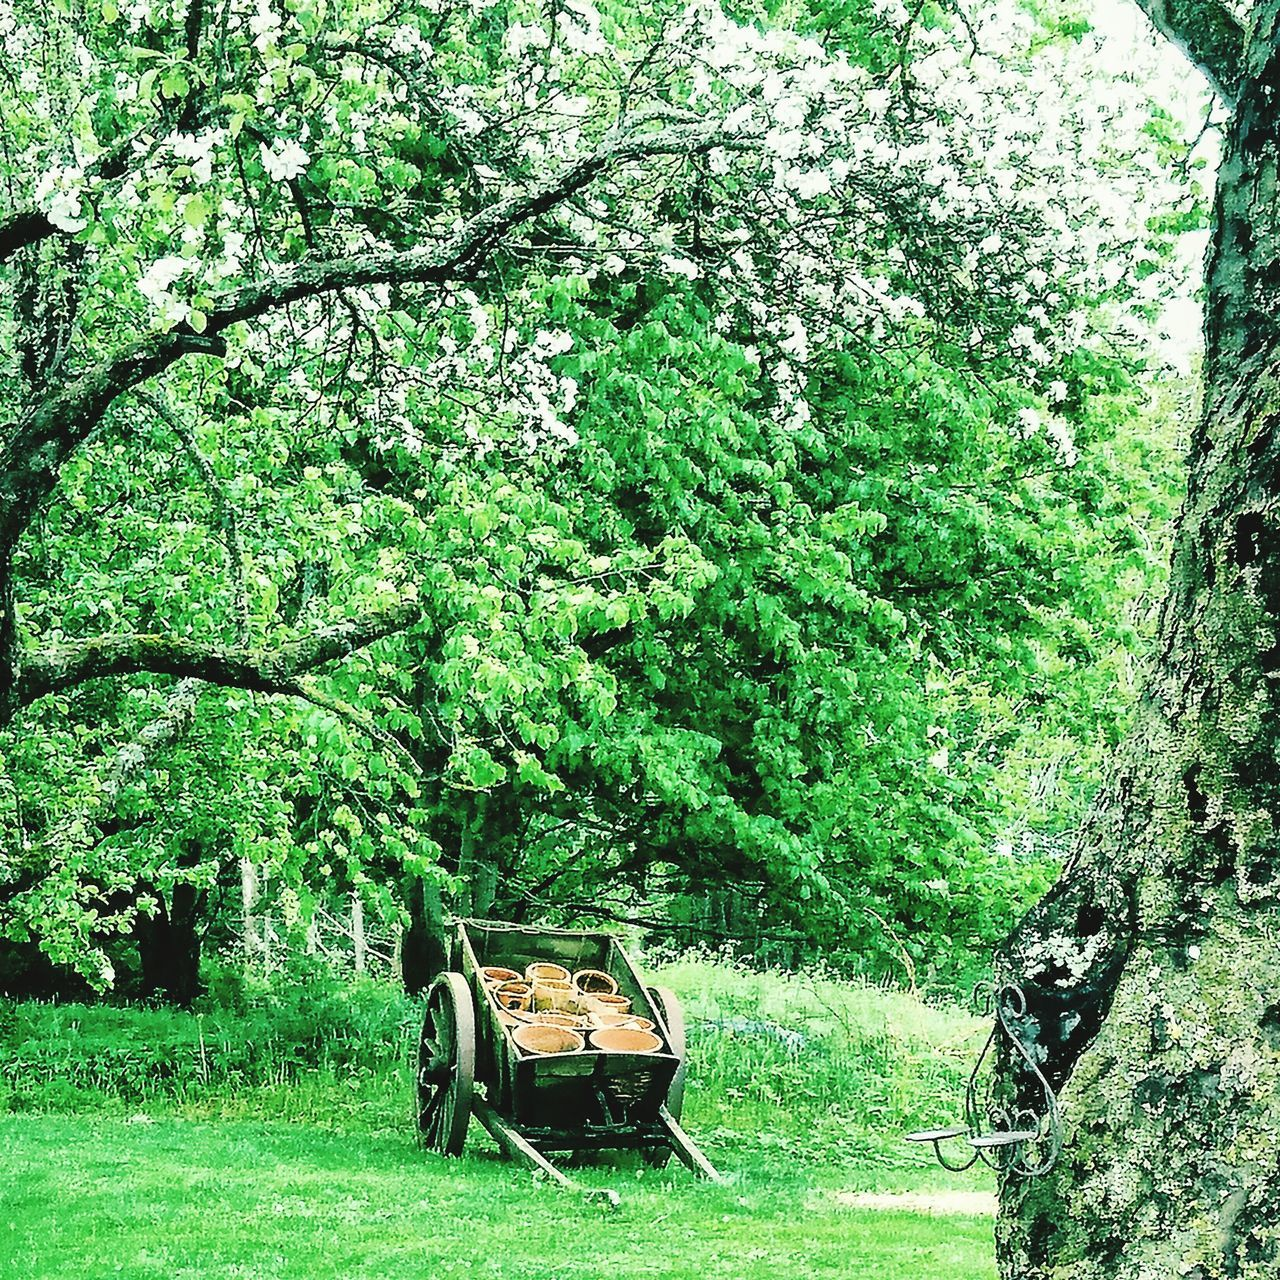 Green Color Growth Nature Tree No People Beauty In Nature Outdoors Day Garden Landscape_Collection Landscape Spring Summer Barrel Old